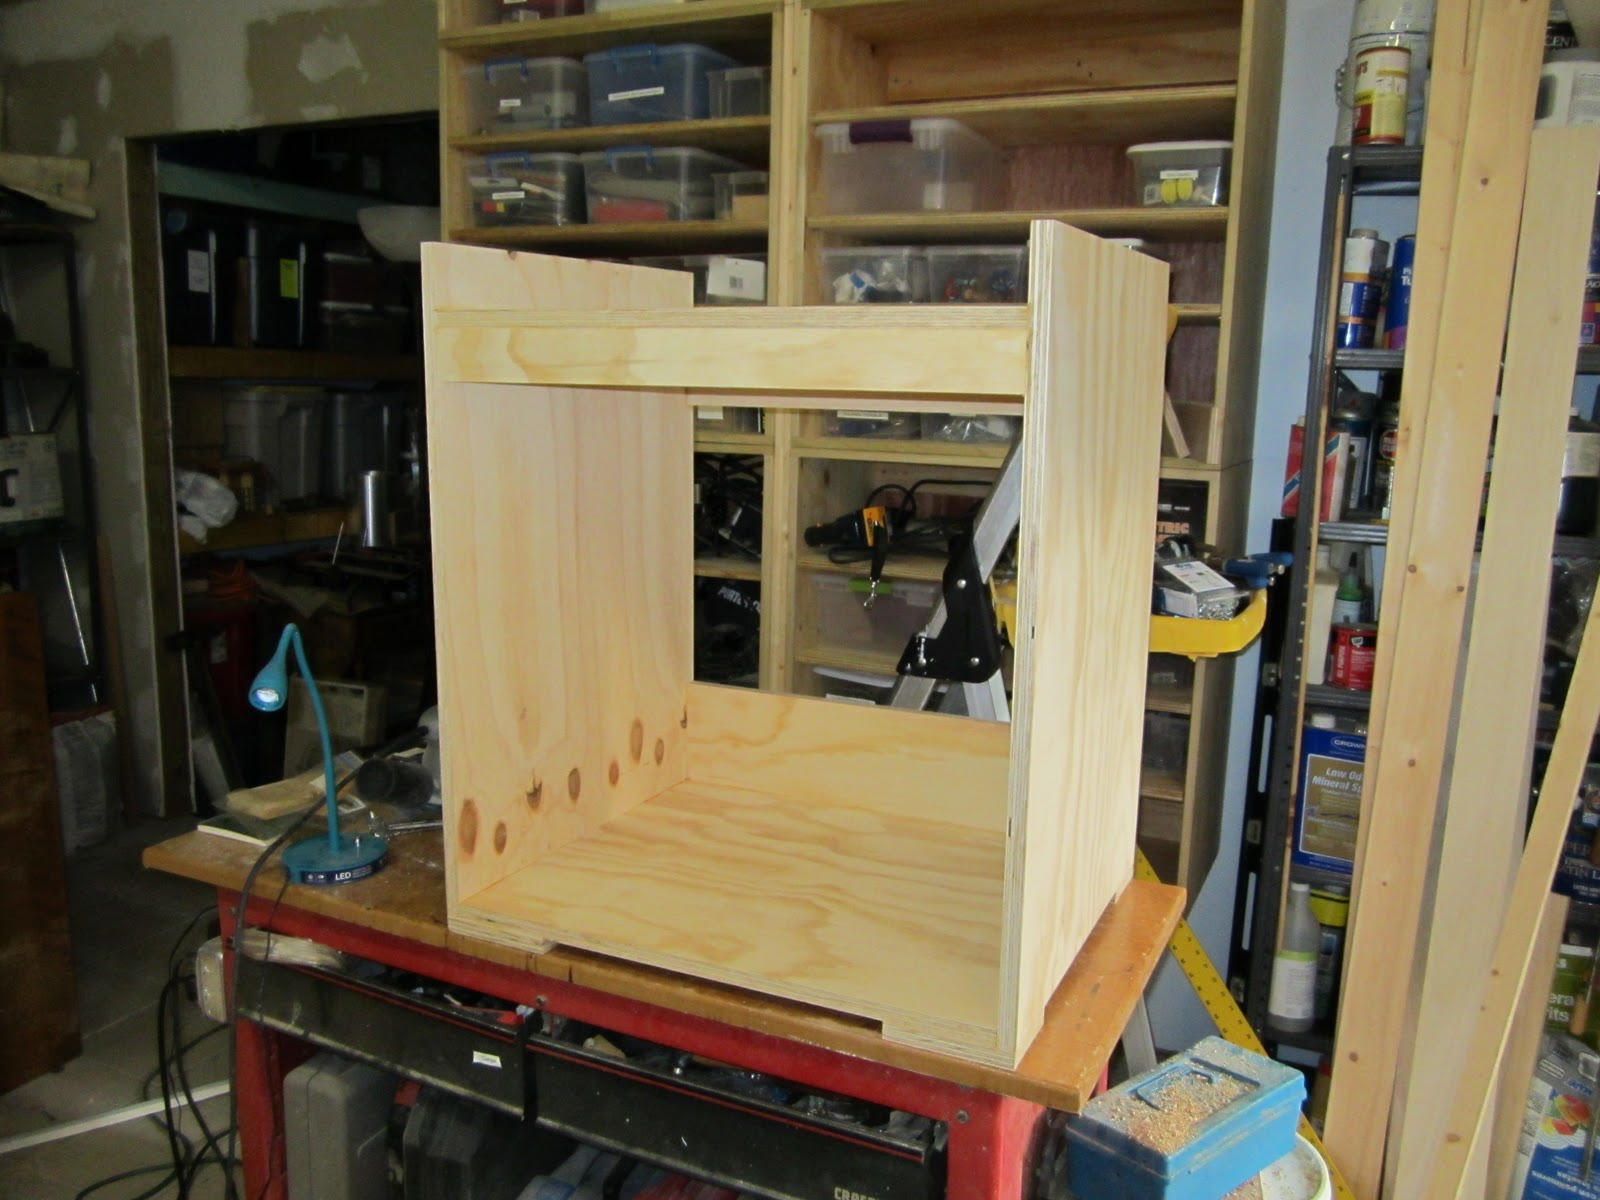 Superb img of tool cabinet carcass assembled base cabinet showing casters and draw with #986E33 color and 1600x1200 pixels